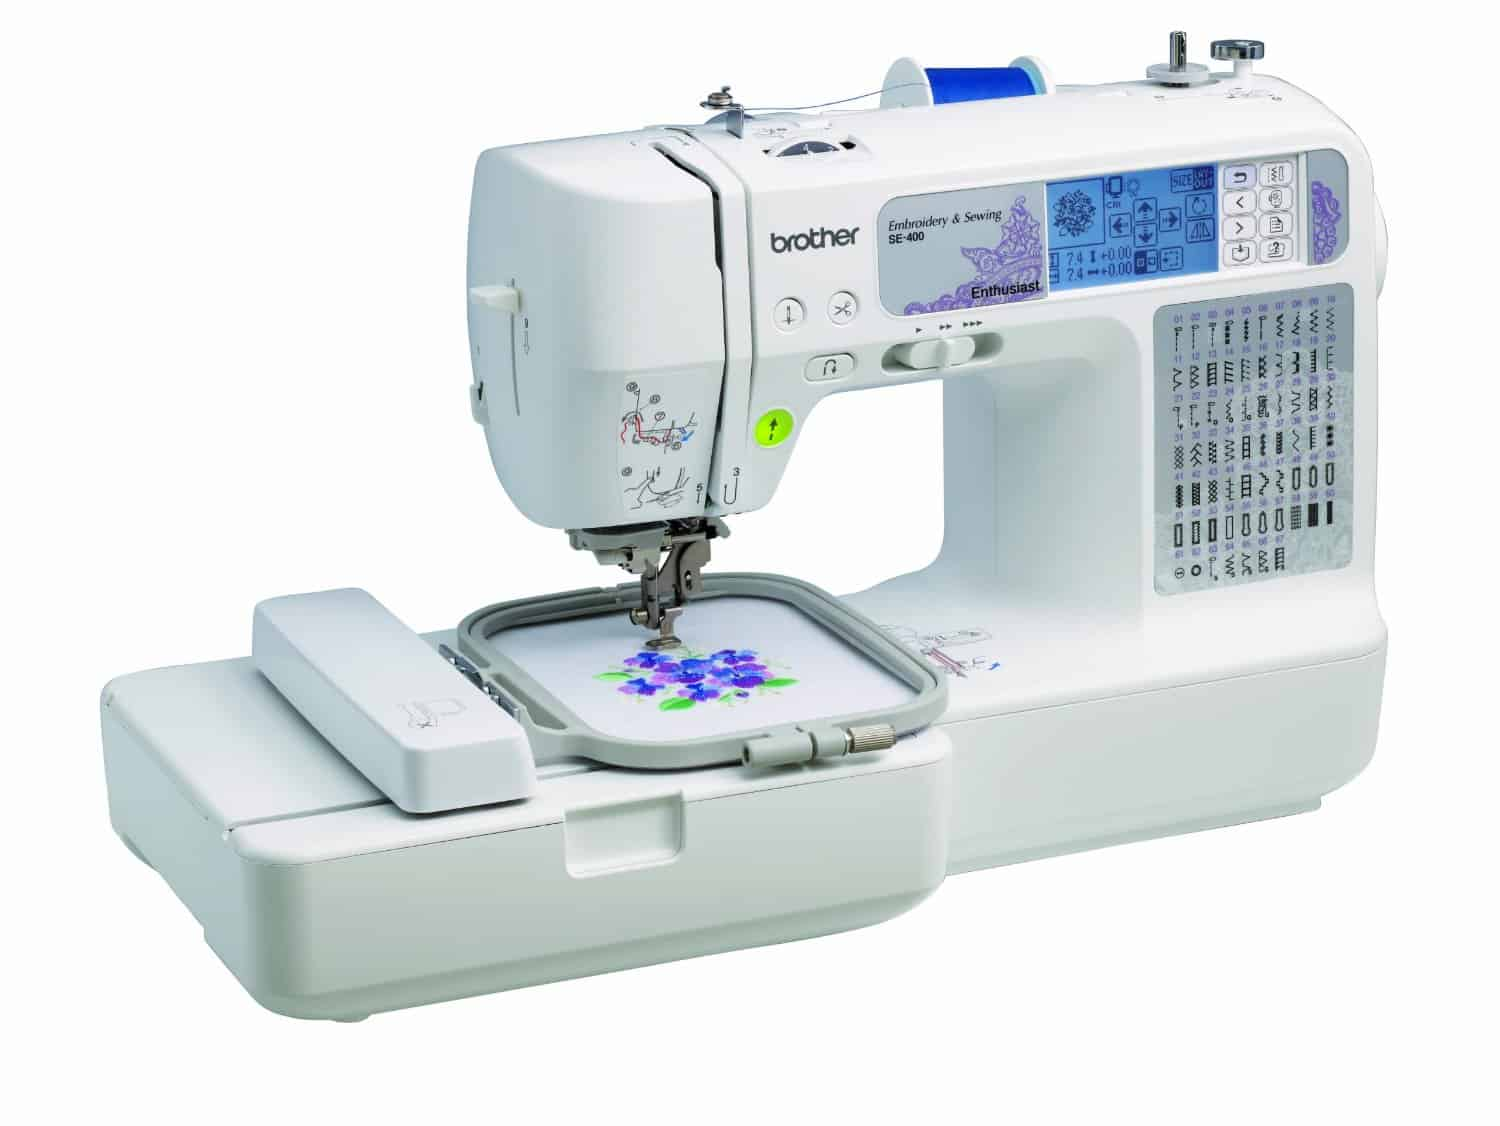 embroidery machine reviews the seasoned homemaker